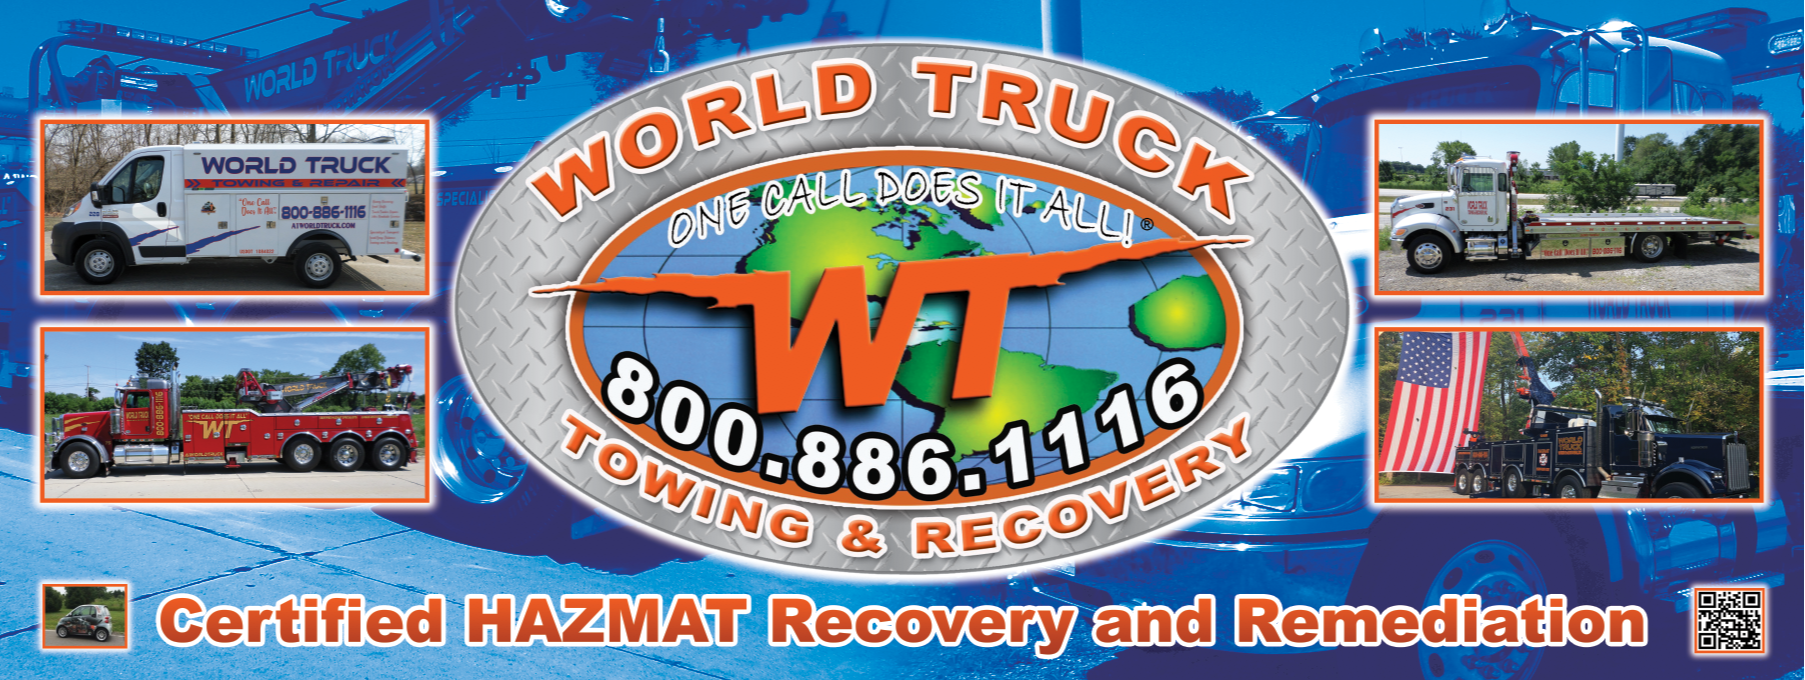 World Truck Towing & Recovery, INC. Towing.com Profile Banner